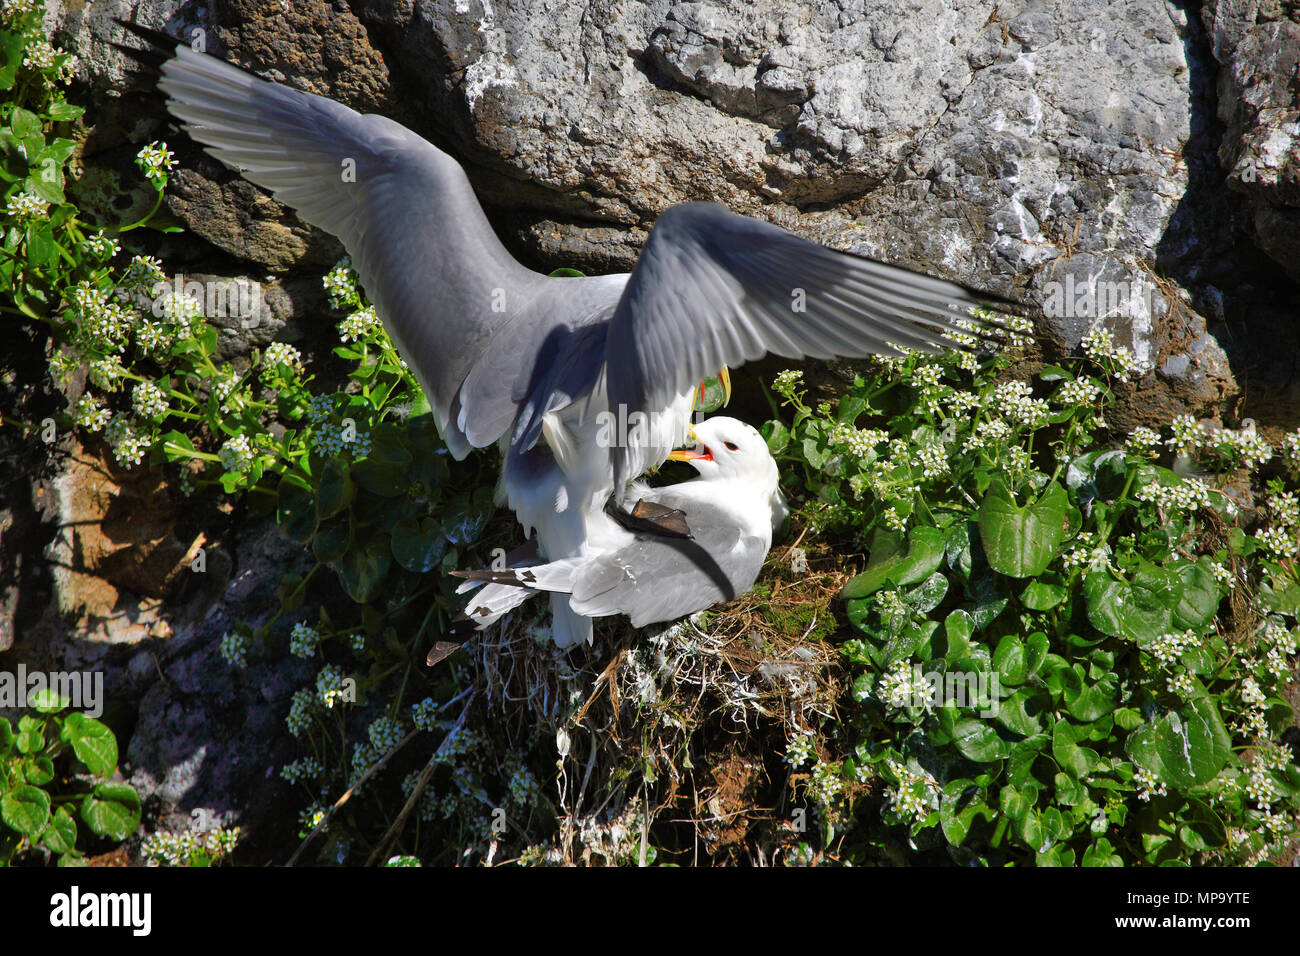 kittiwakes-mating-on-a-cliff-face-MP9YTE